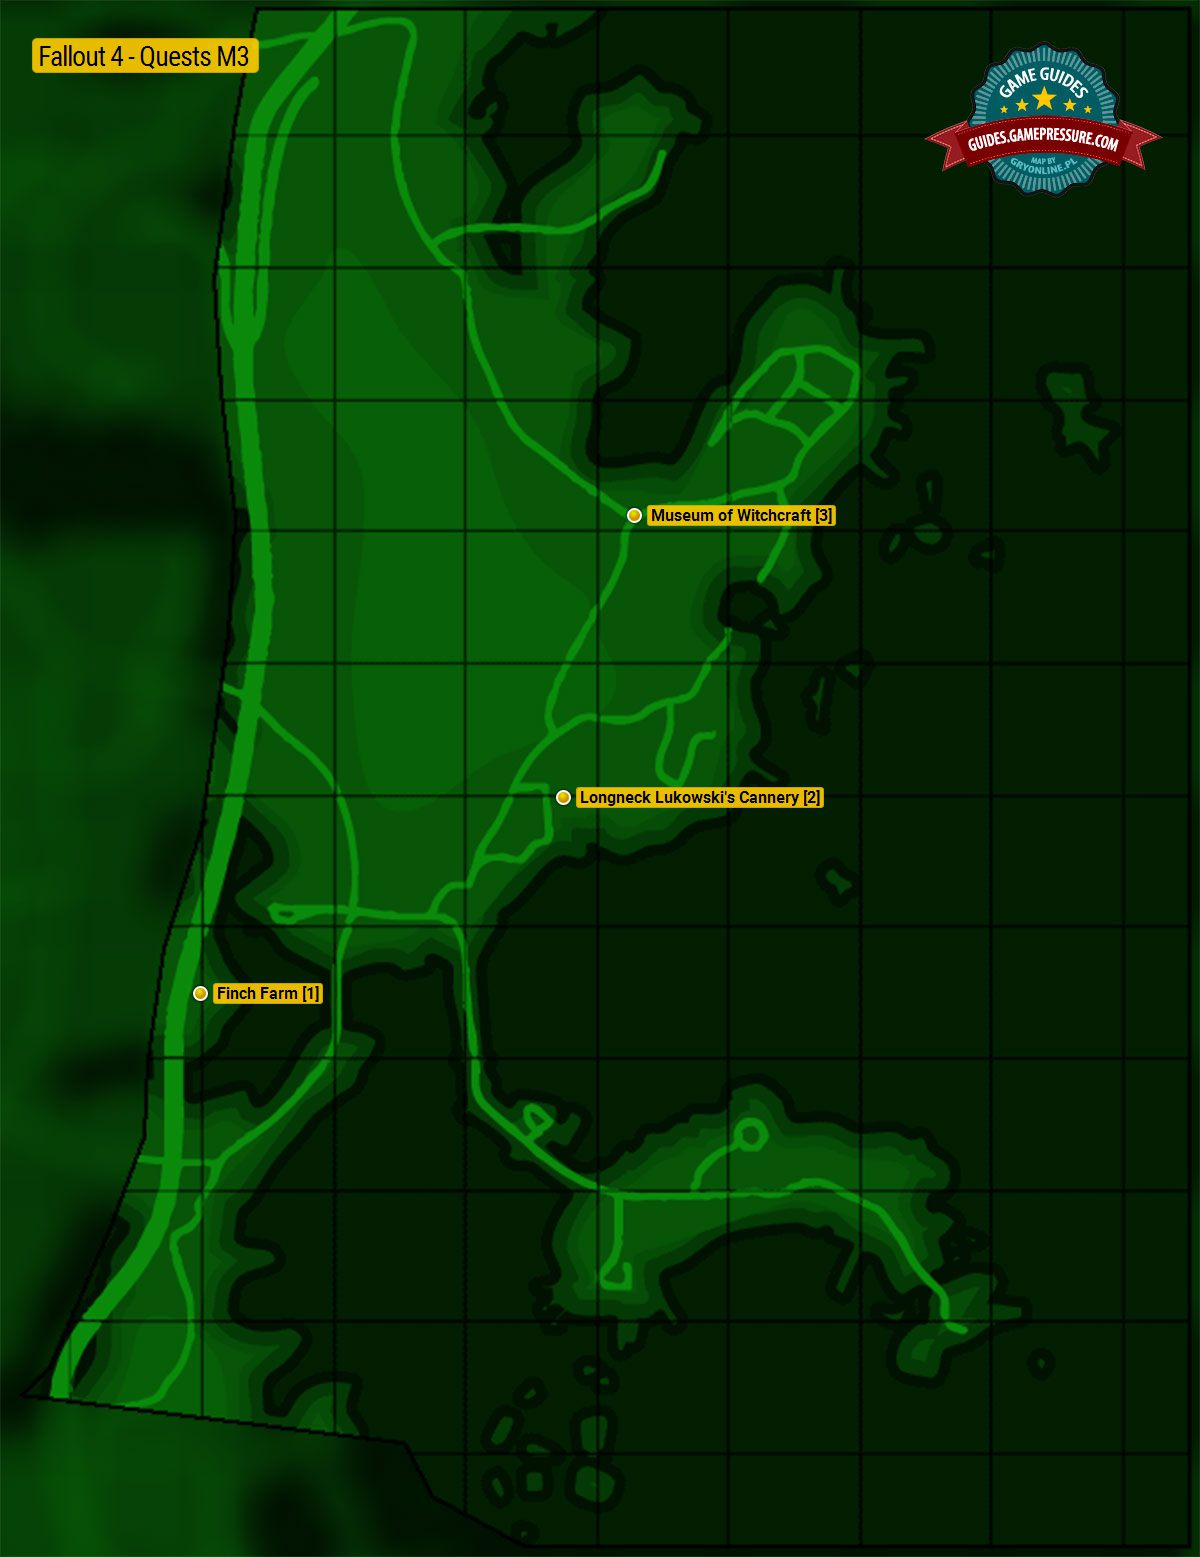 Fallout 4 Enemy Level Map : fallout, enemy, level, Salem, Fallout, Guide, Walkthrough, Gamepressure.com